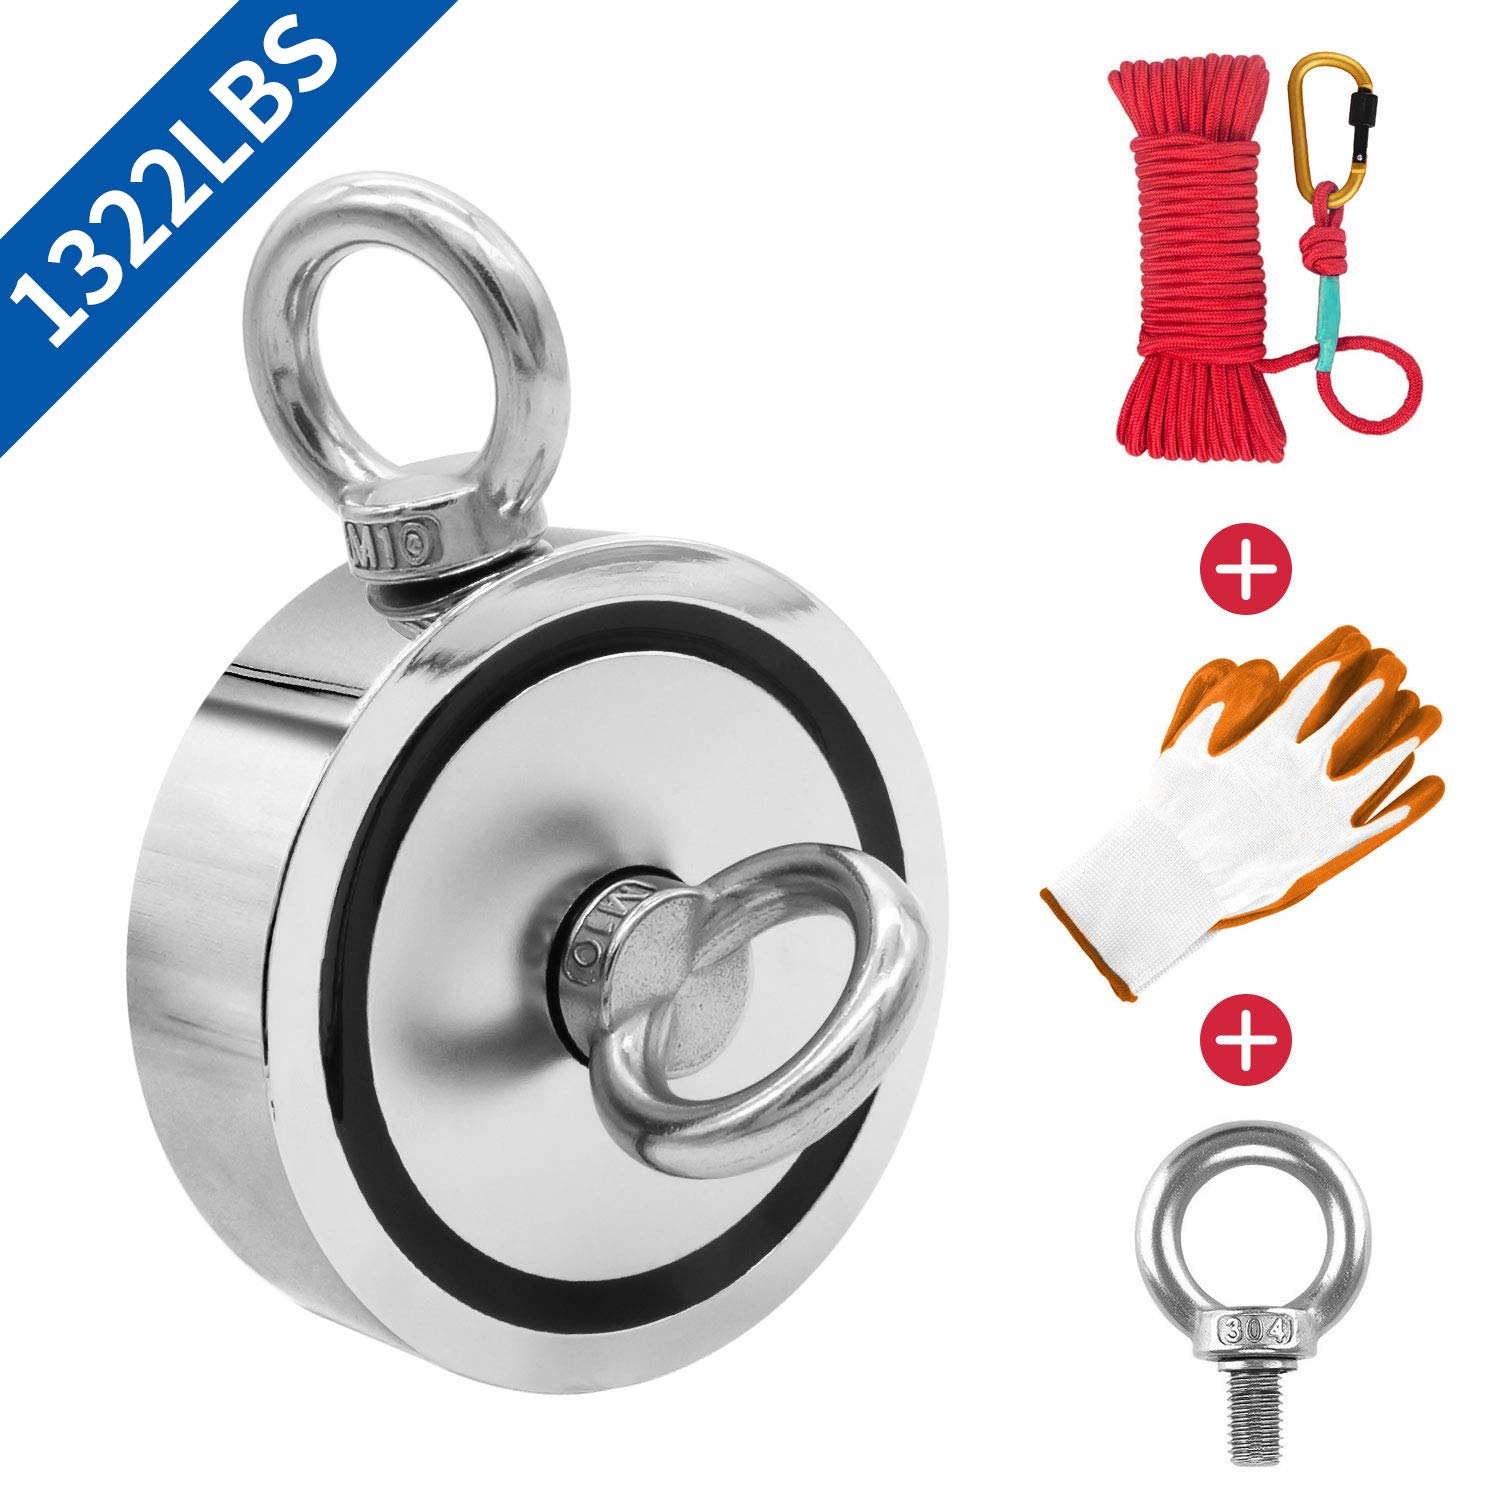 Fishing Magnet Double Sided, 3.7'' Diameter, 1322lbs Pulling Force Strong Round Neodymium Rare Earth Magnet with Eyebolt, Heavy Duty Rope & Non-Slip Gloves for Magnetic Fishing, River, Salvage by KYGNE